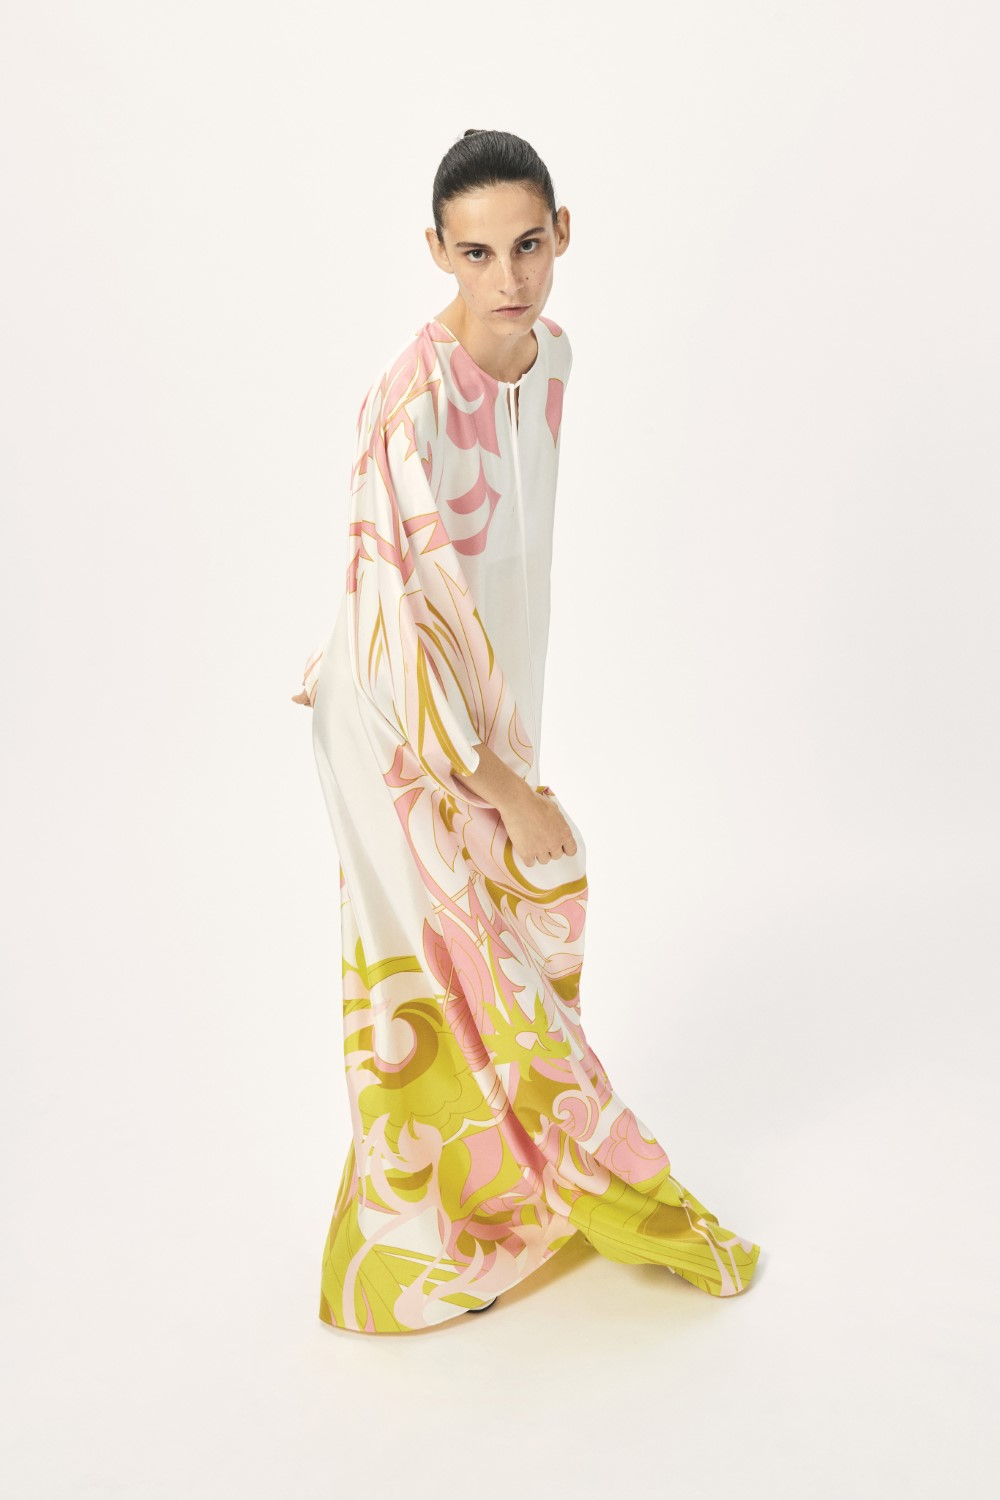 Emilio Pucci Resort 2021 Lookbook